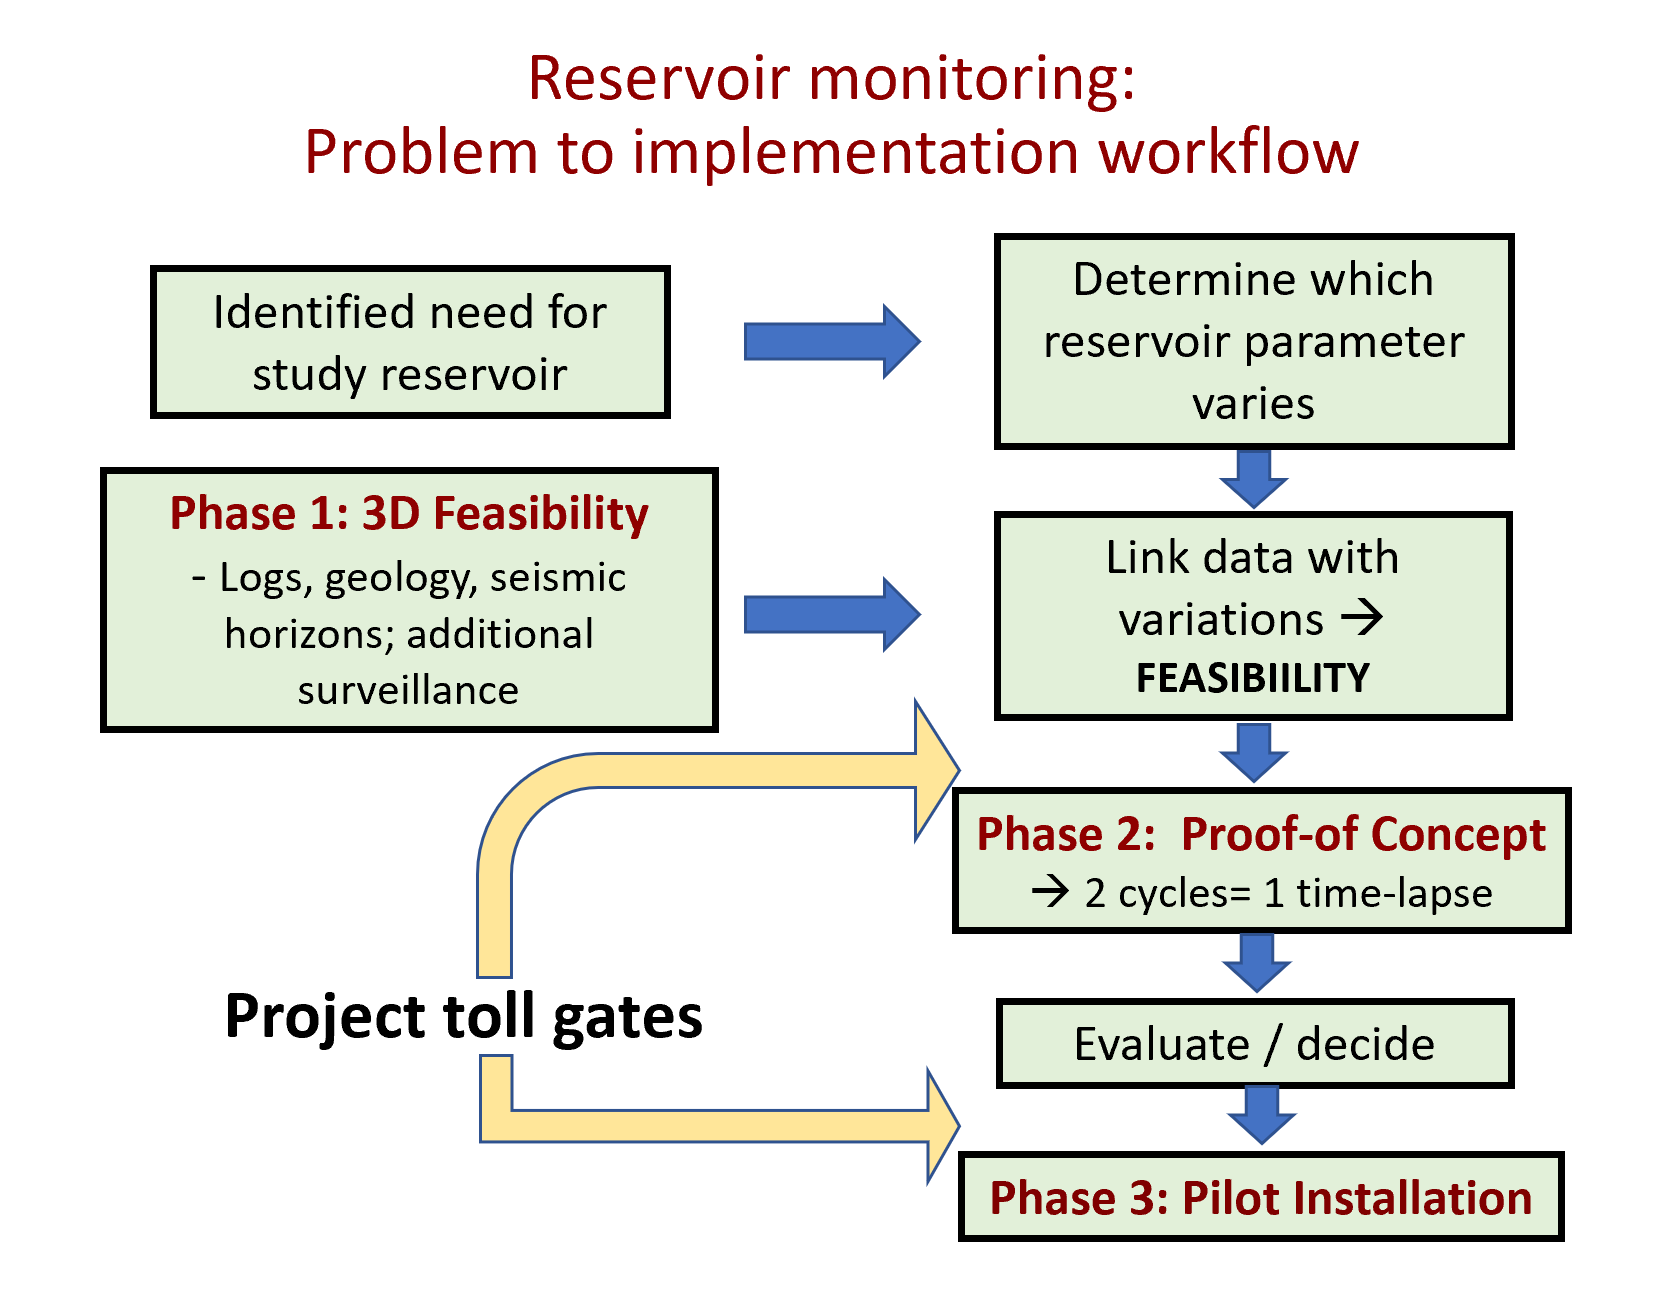 Figure 4 Workflow for the reservoir monitoring project, including all their phases.